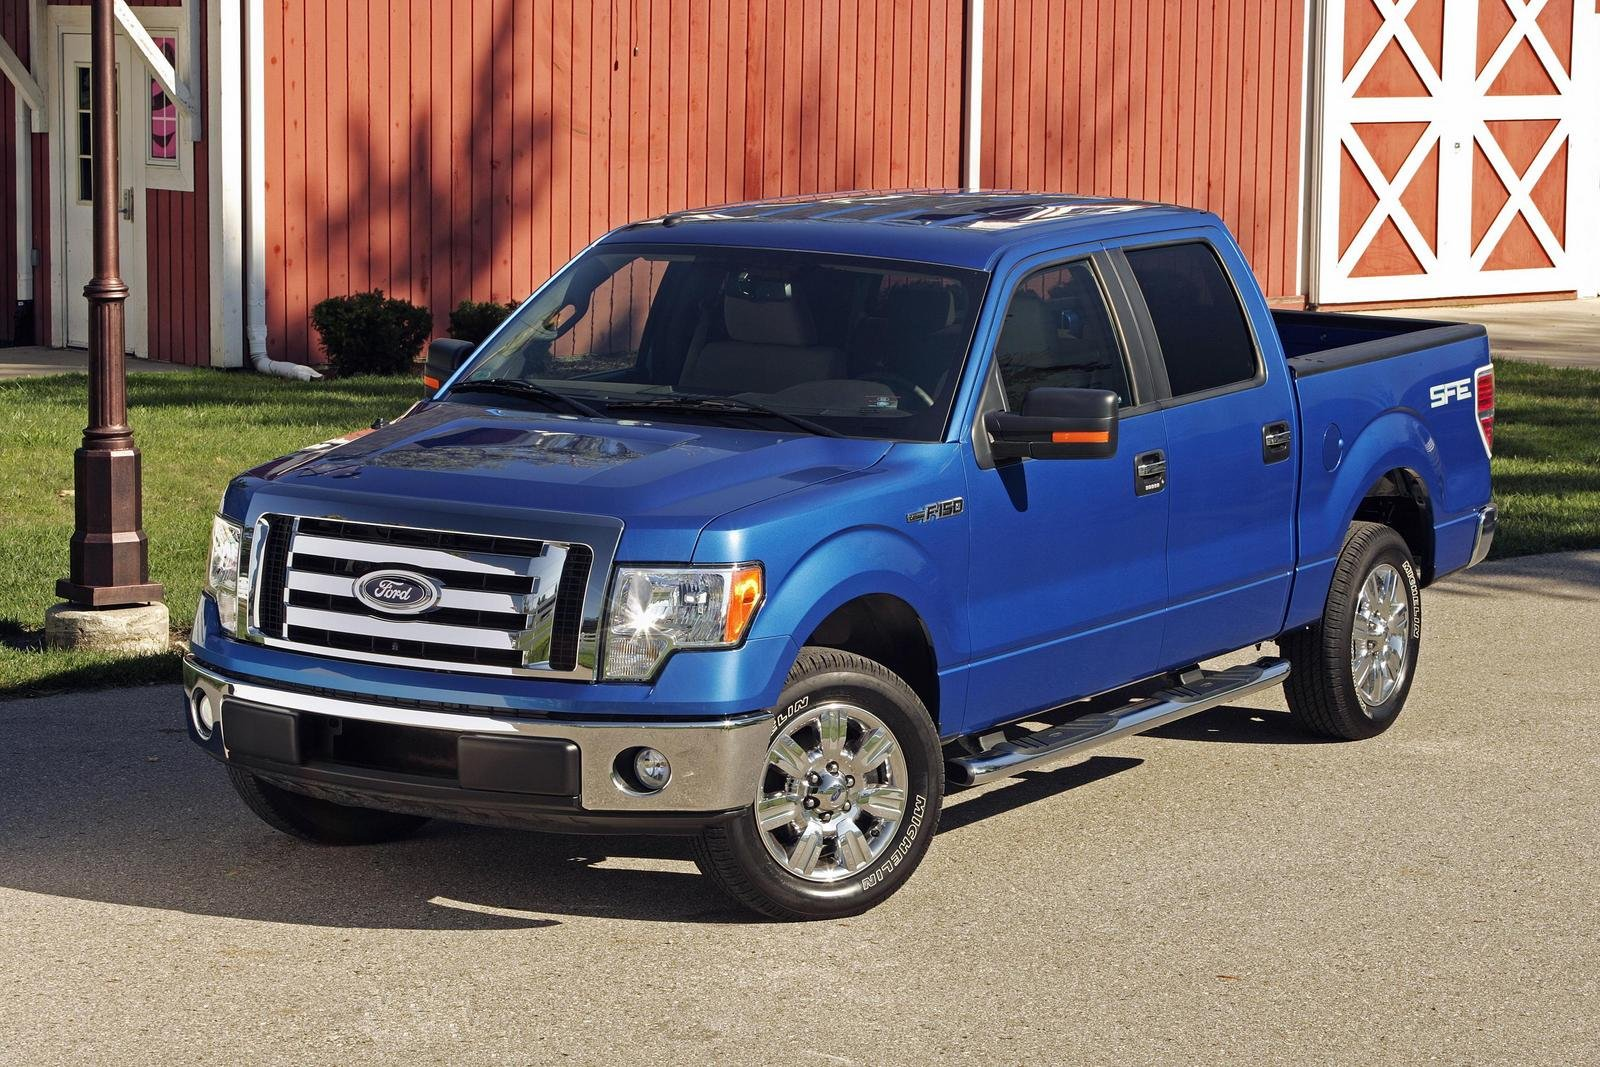 2009 ford f150 on sale in october fuel economy improved by 8 picture 264303 car news top. Black Bedroom Furniture Sets. Home Design Ideas